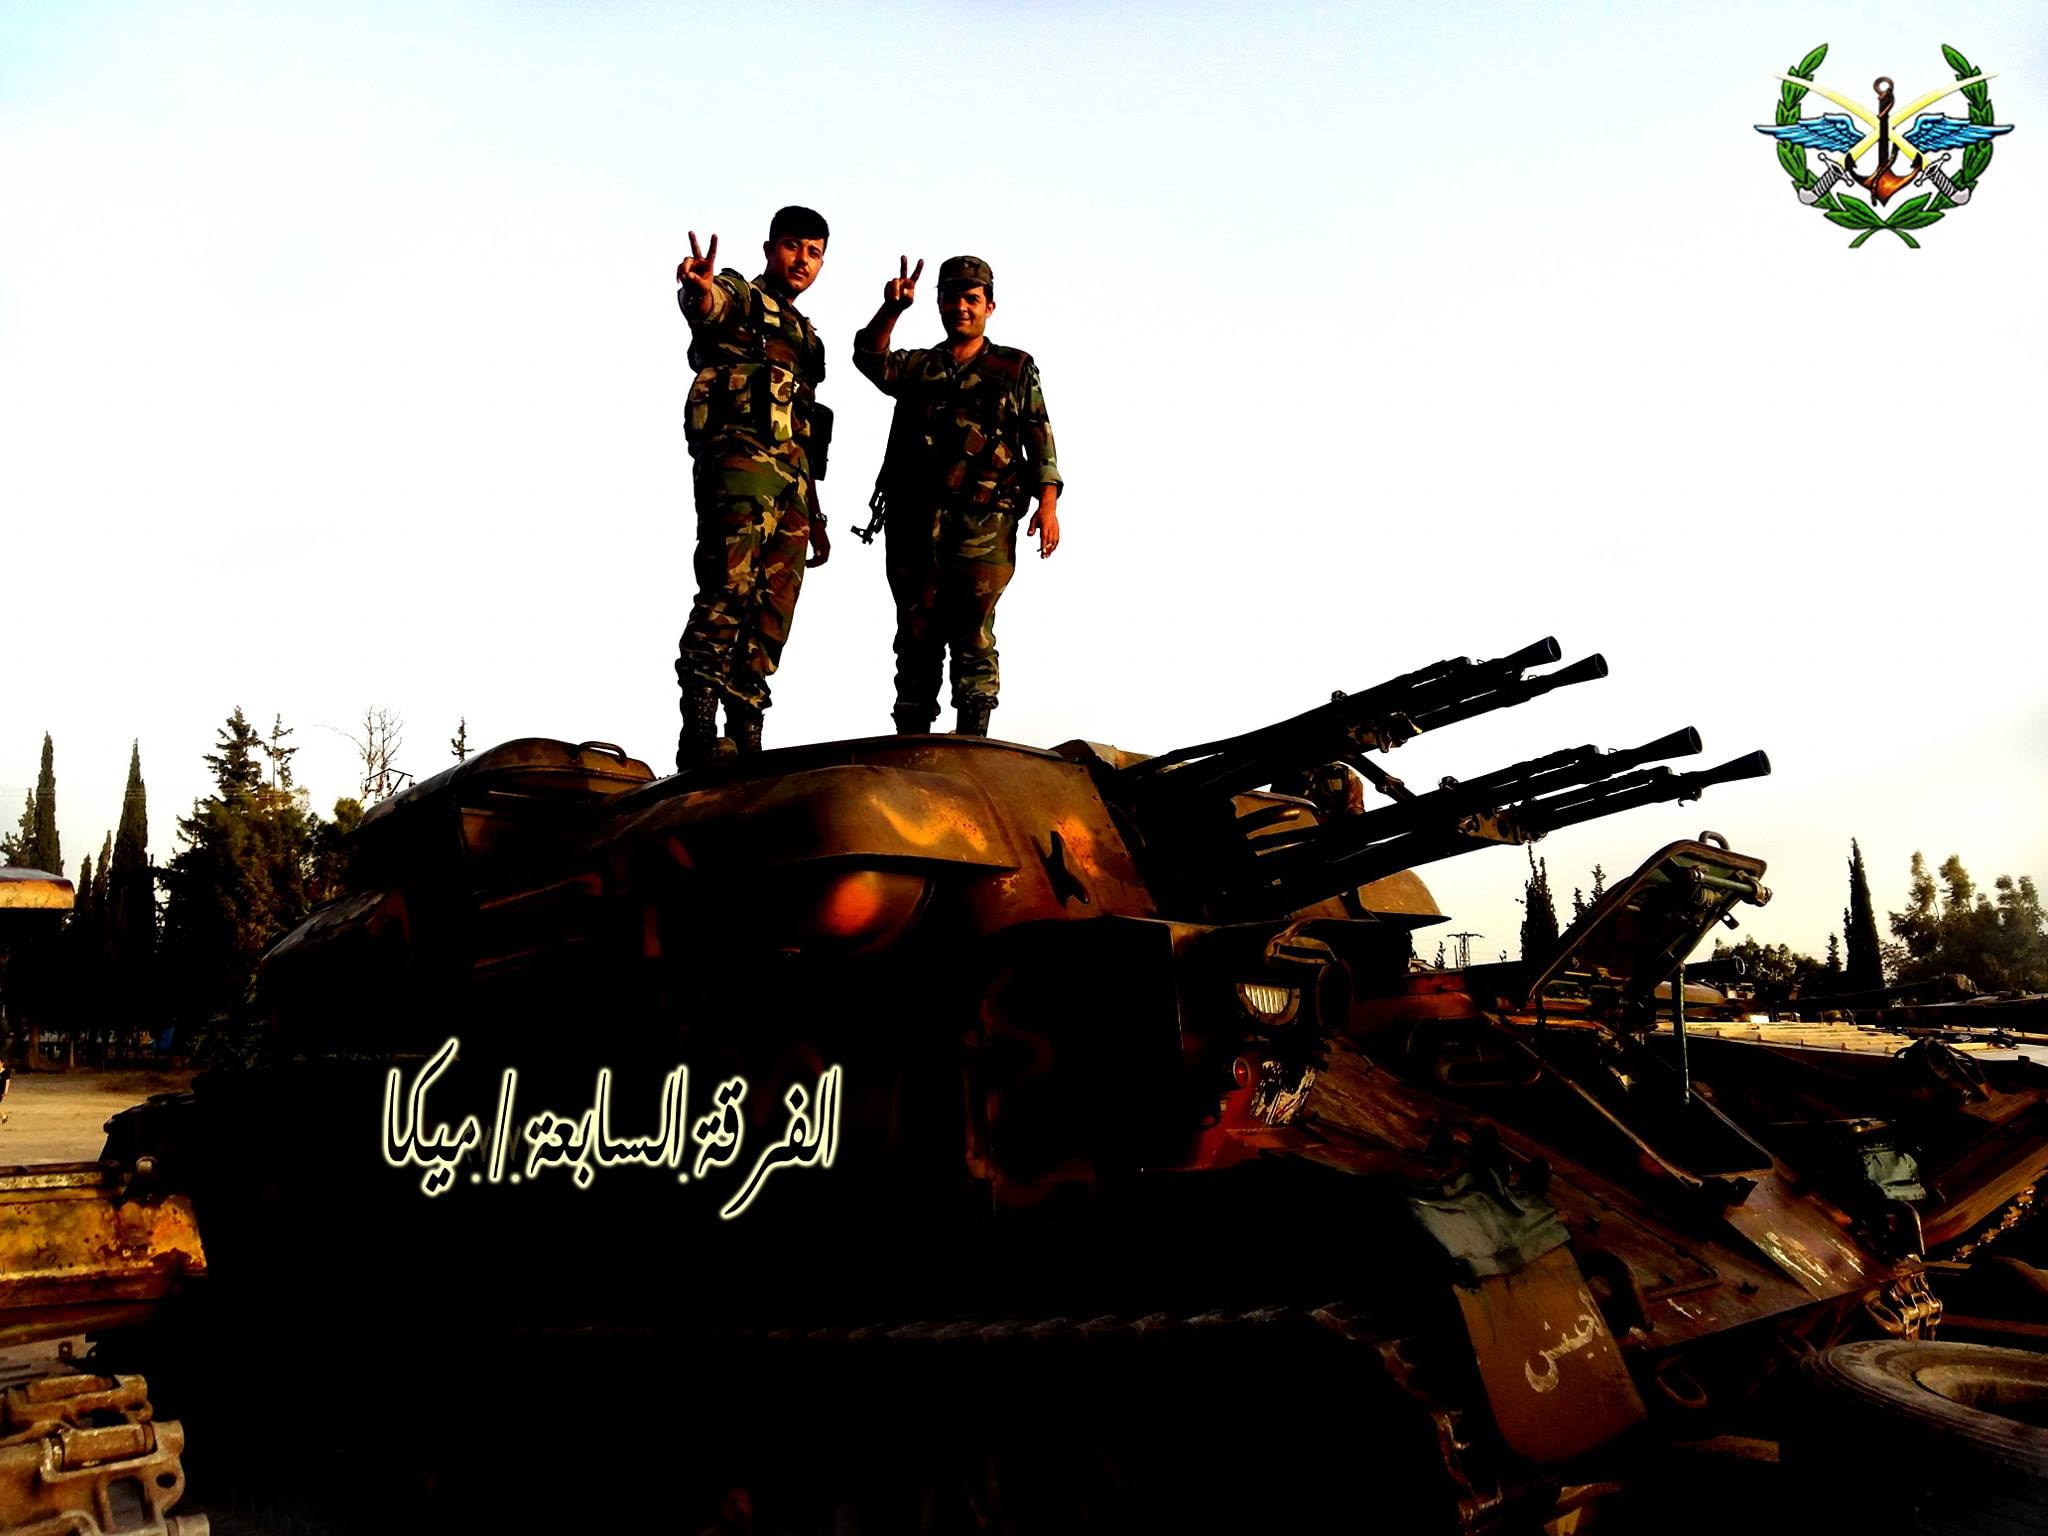 In Photos: Syrian Army Deploys Additional Troops, Equipment In Northern Hama